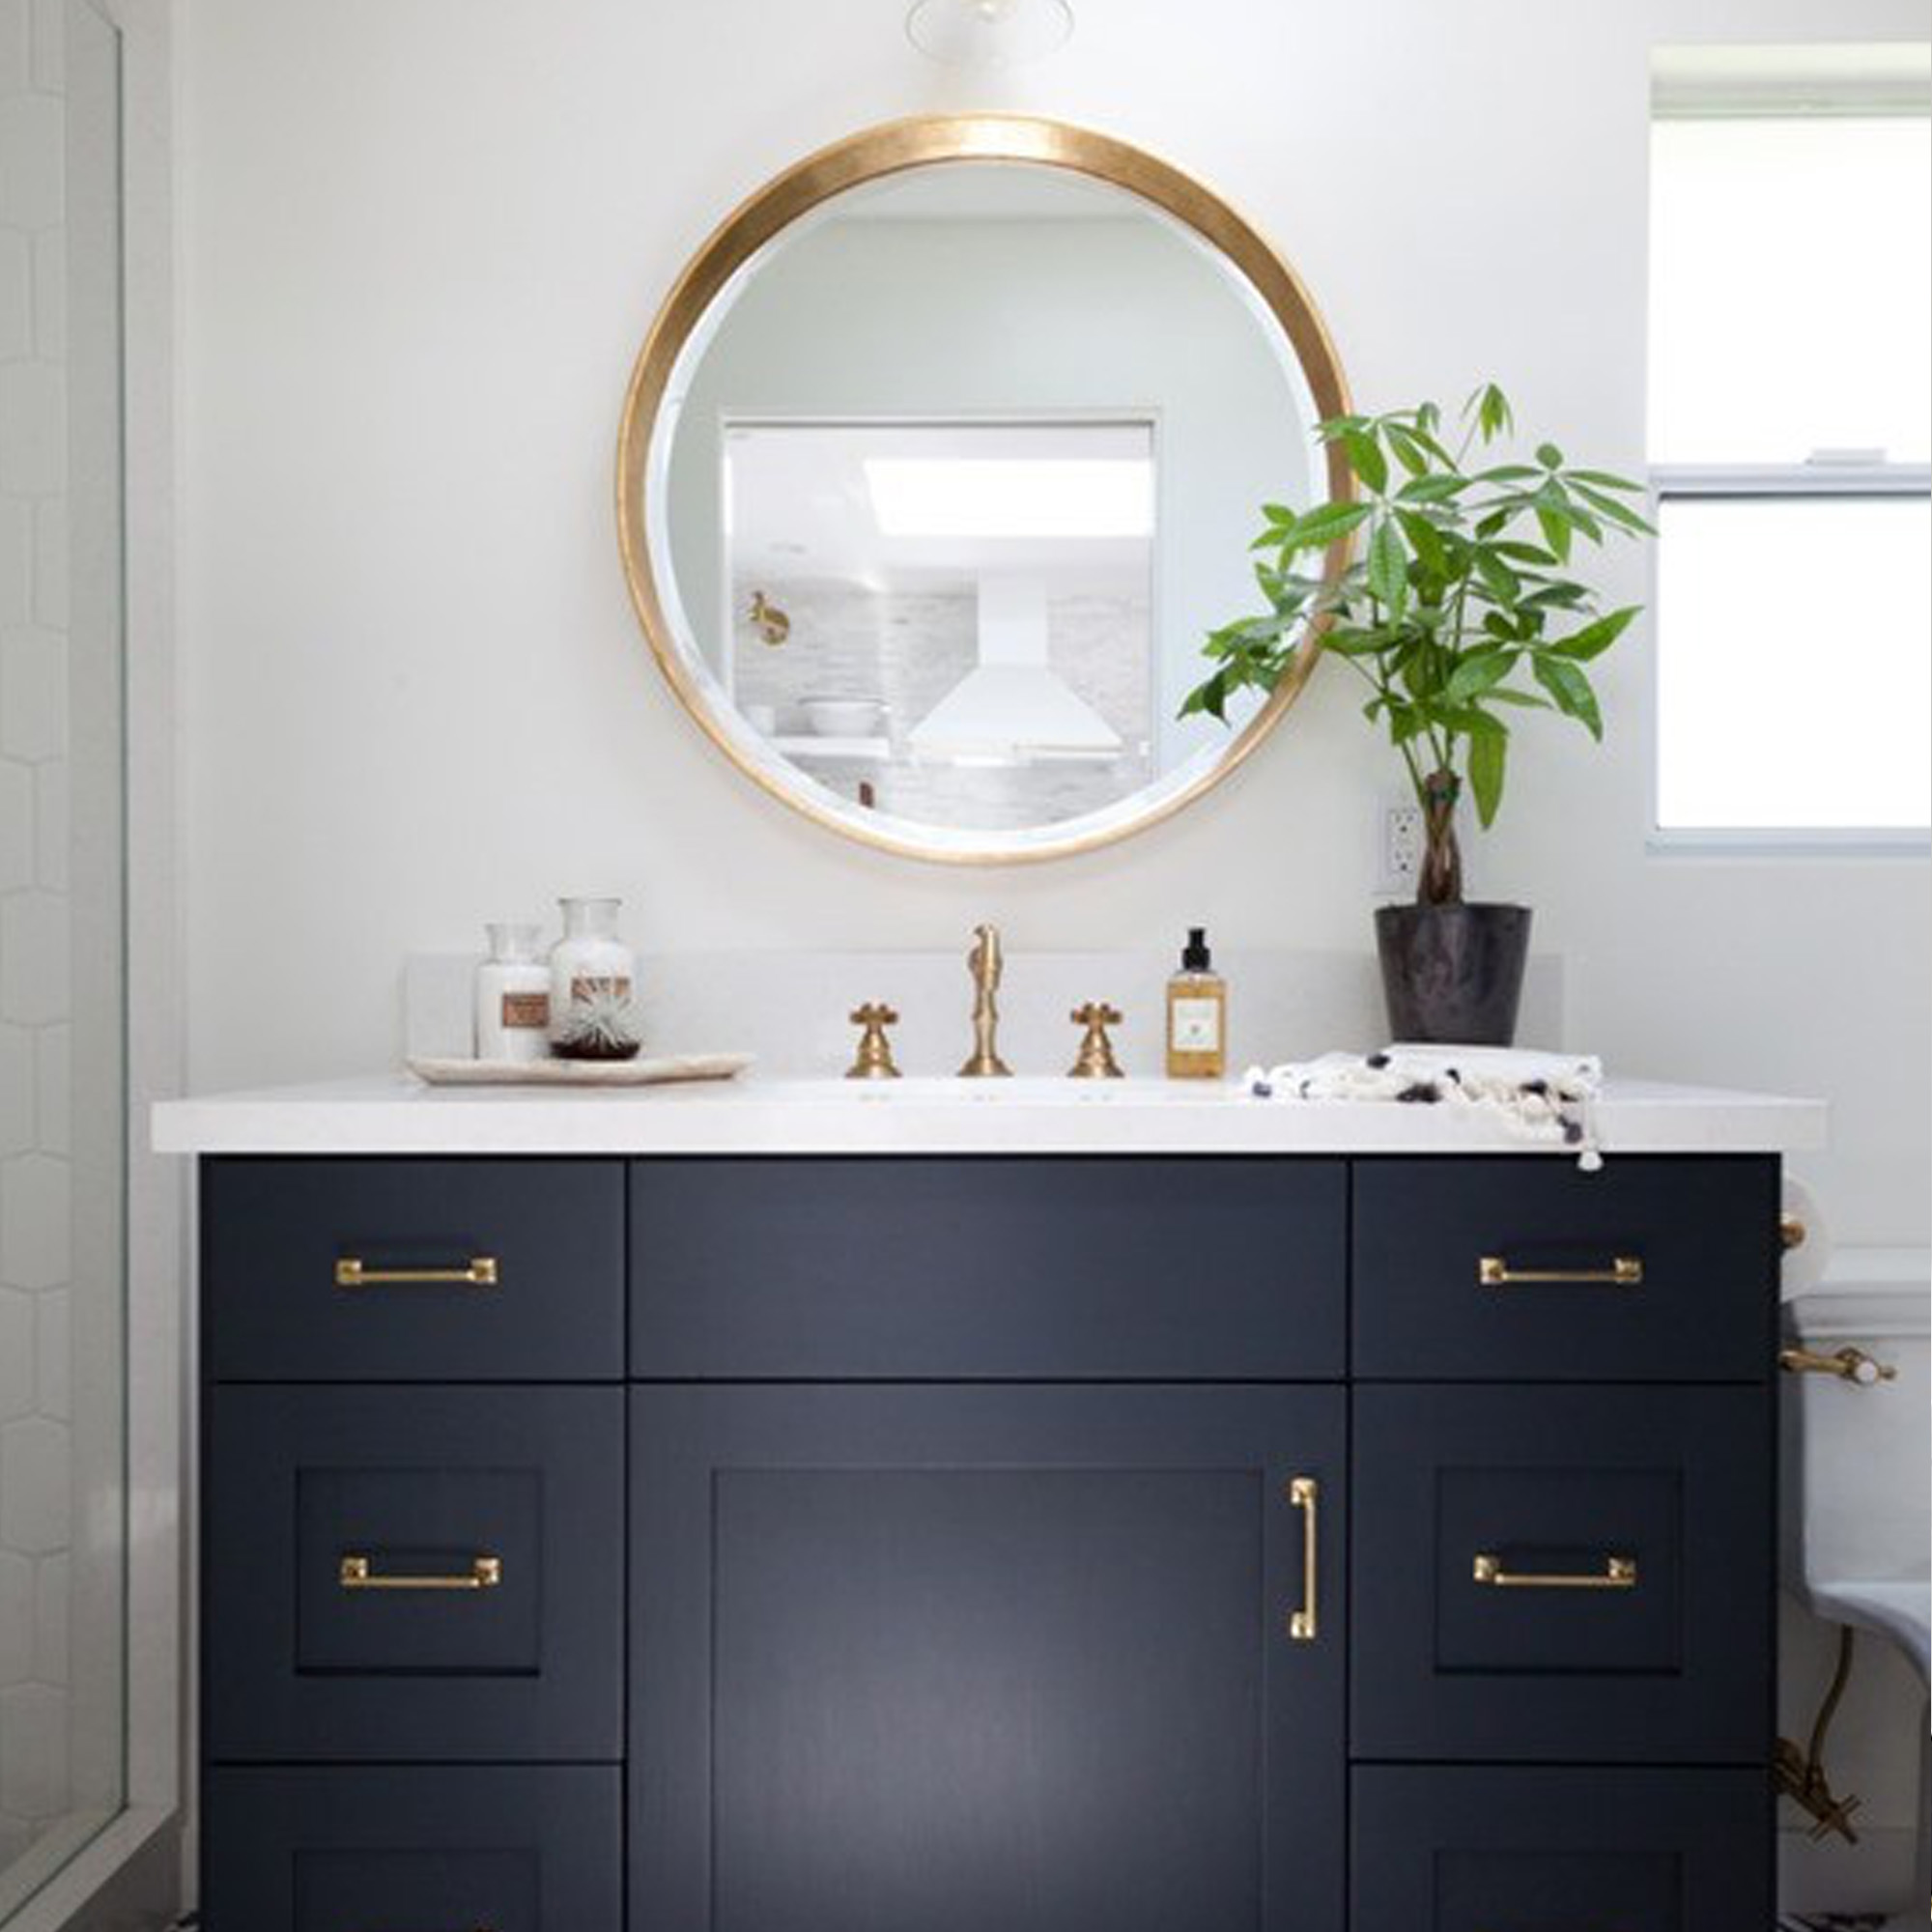 Bathroom Light With Outlet How High To Place Your Bathroom Fixtures Inspired To Style